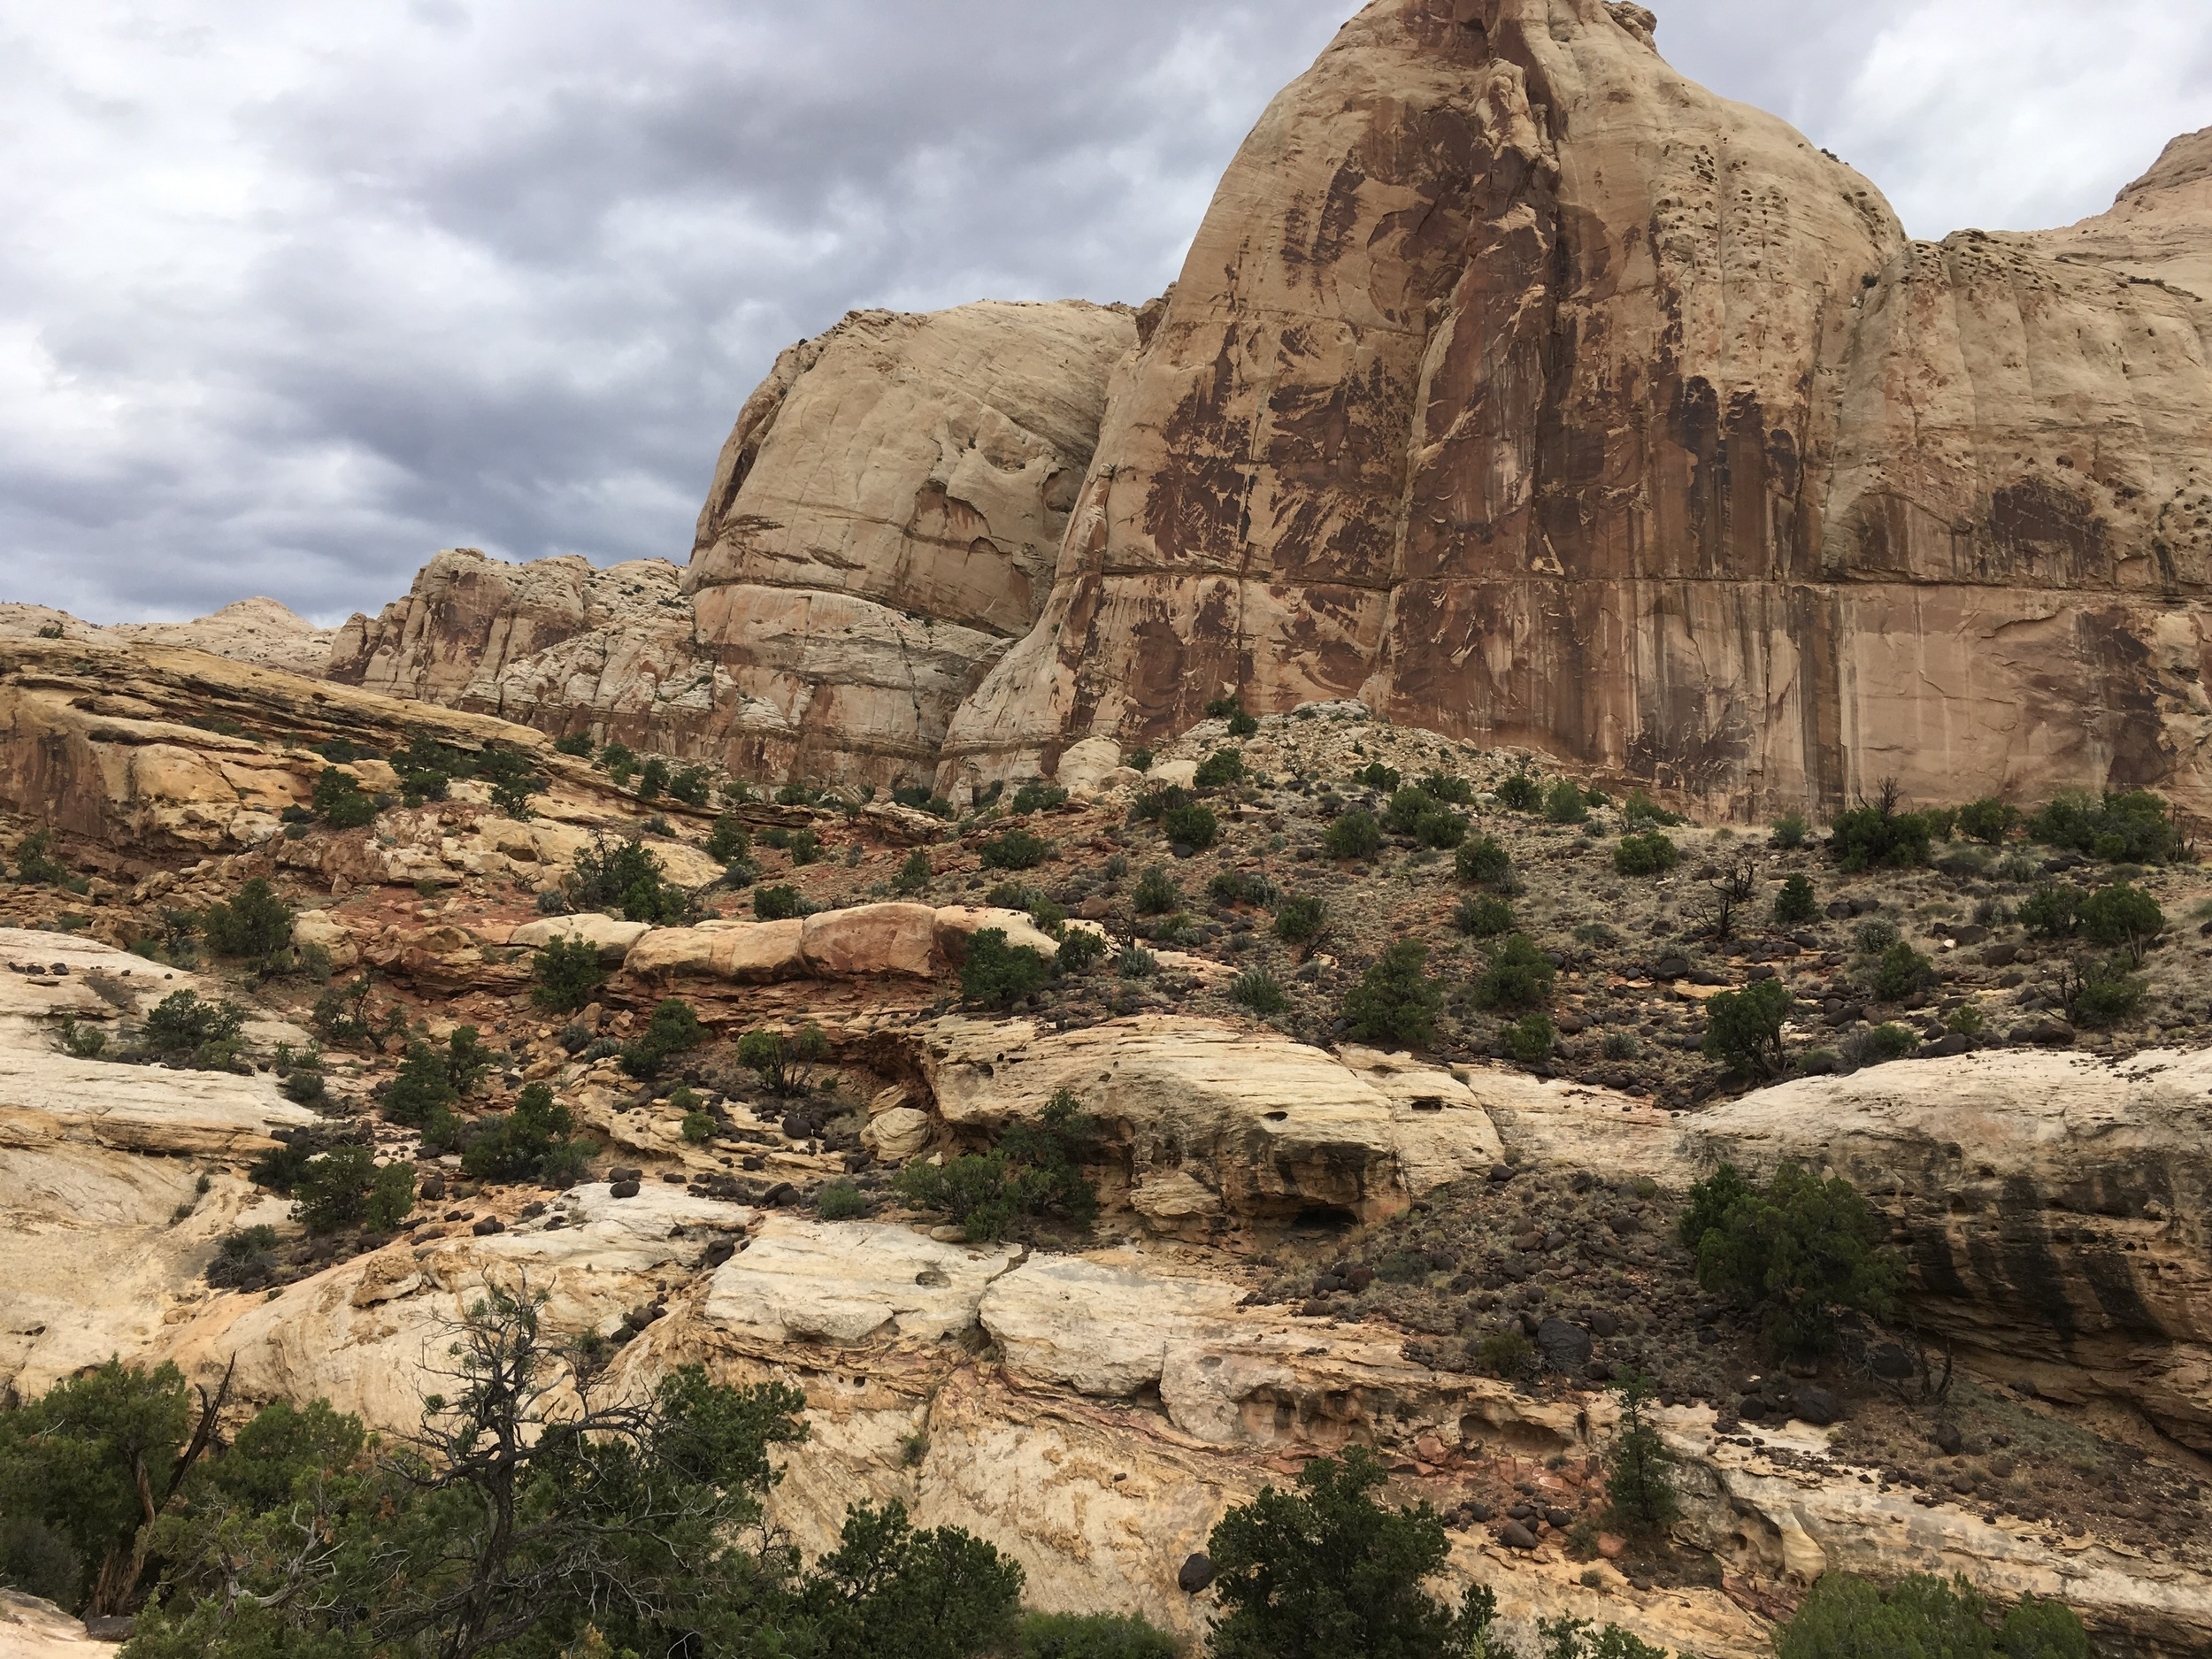 Geology at Capitol Reef